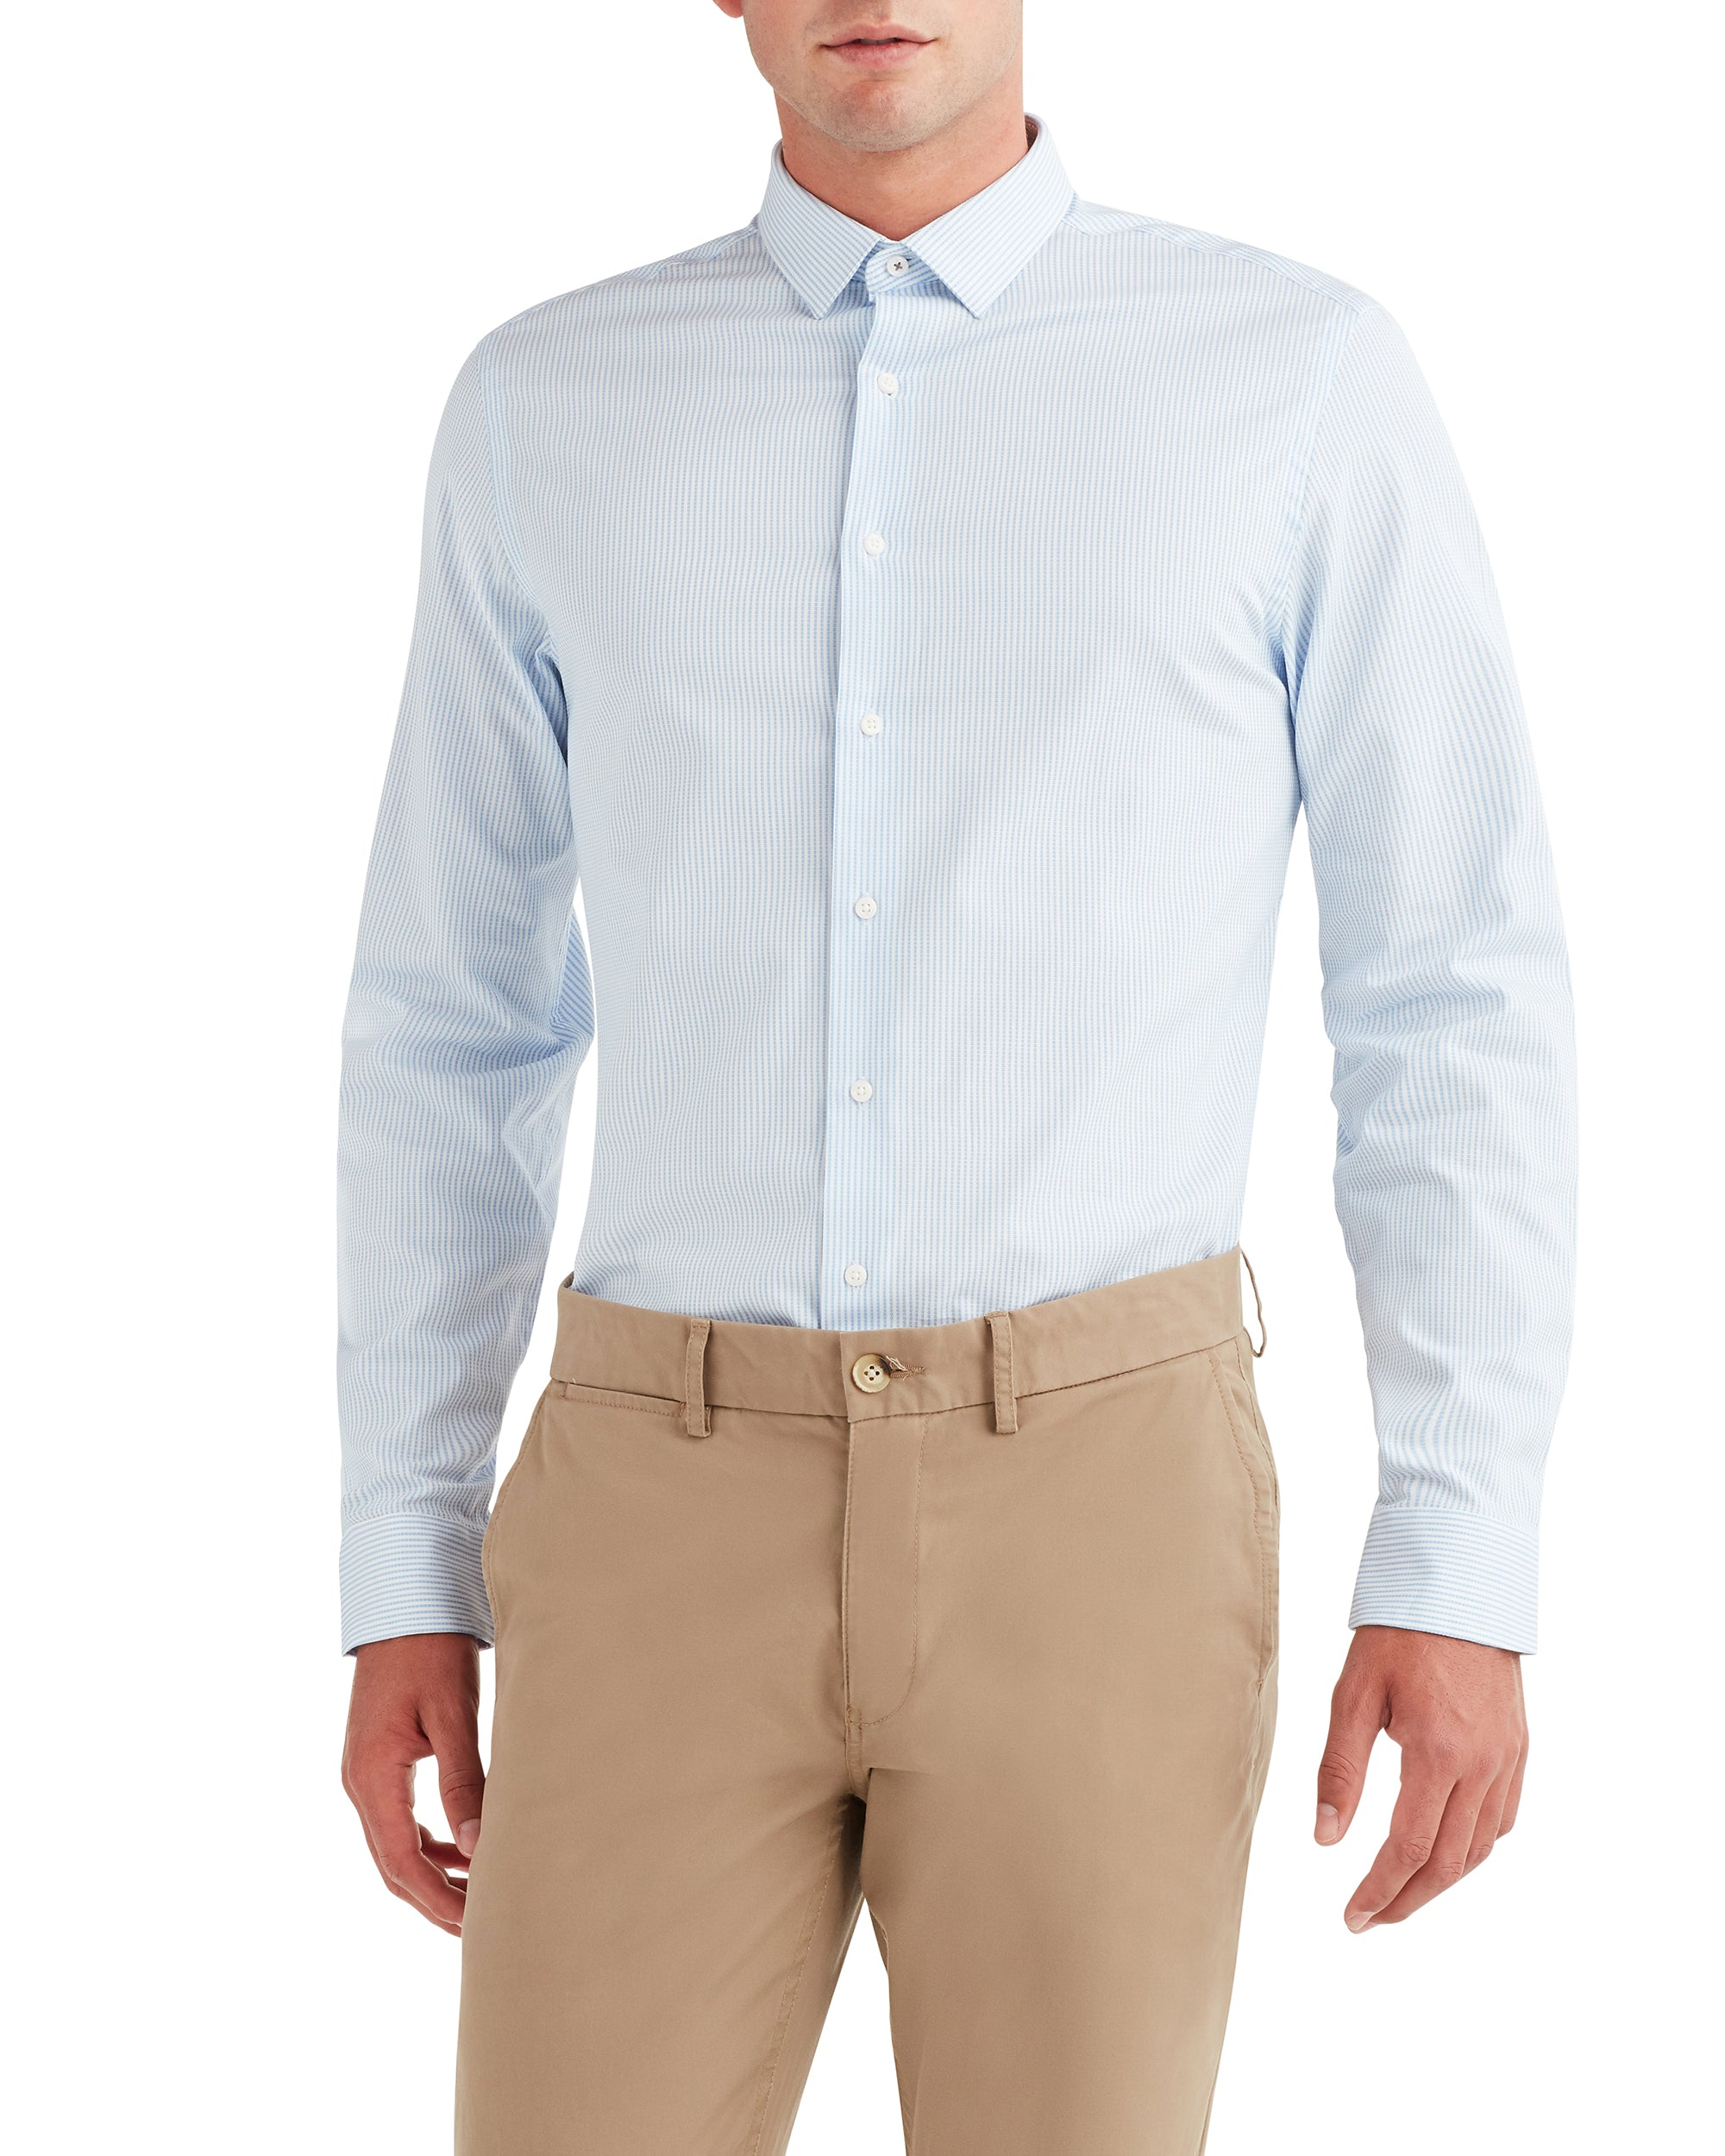 Dobby Stripe Slim Fit Dress Shirt - Light Blue